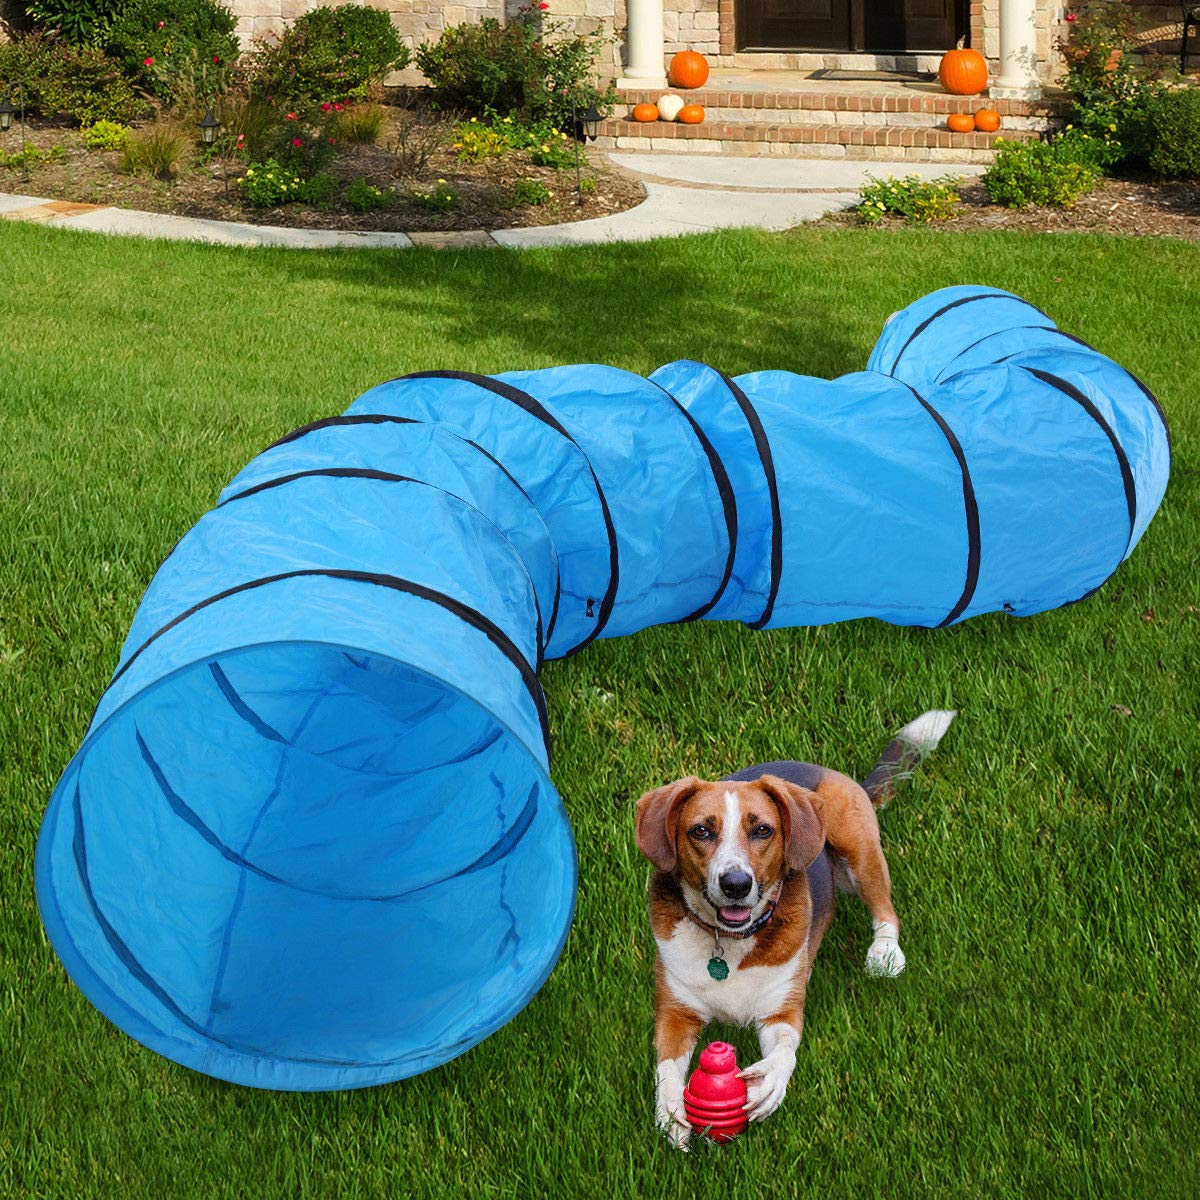 Thegreatshopman 16.4 Ft Long Dog&Cat Agility Training Tunnel w/Carrying Bag by Thegreatshopman